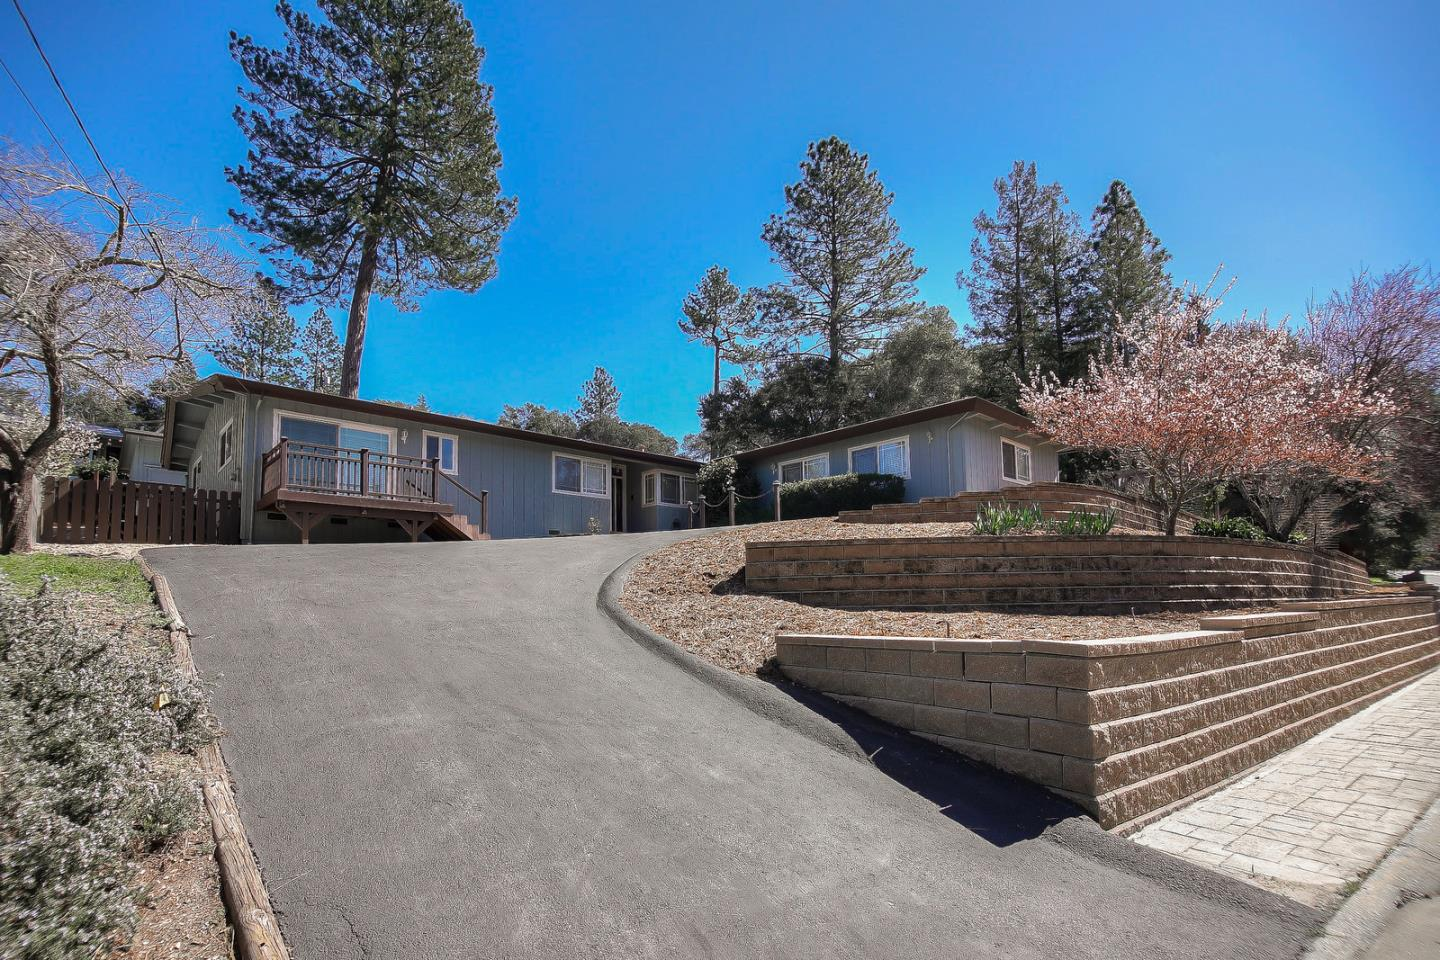 Located in the highly sought after Hihn Road area of Ben Lomond, this home is set on a sunny double lot with mountain views. The fully landscaped yard features low maintenance mature plants, impressive hardscaping with terraces, patios, and paths that lead to a garden shed and workshop. There's an abundance of parking with two driveways including space for oversized vehicles as well as a large two car garage. With over 2200 square feet, the single level floor plan is ideal with an easy flow between indoor and outdoor living. Highlights include spacious bedrooms, an inviting living room, large dining area and kitchen, covered outdoor patio, and a huge family room with an office nook and wet bar. To top it off, there's also a bonus room attached to the garage perfect for your hobbies or a quiet office space. Fantastic commute location with easy access. Close in country at it's best. City water and natural gas. Excellent Schools K-12. **FIRST OPEN HOUSES SAT & SUN 12-5pm**